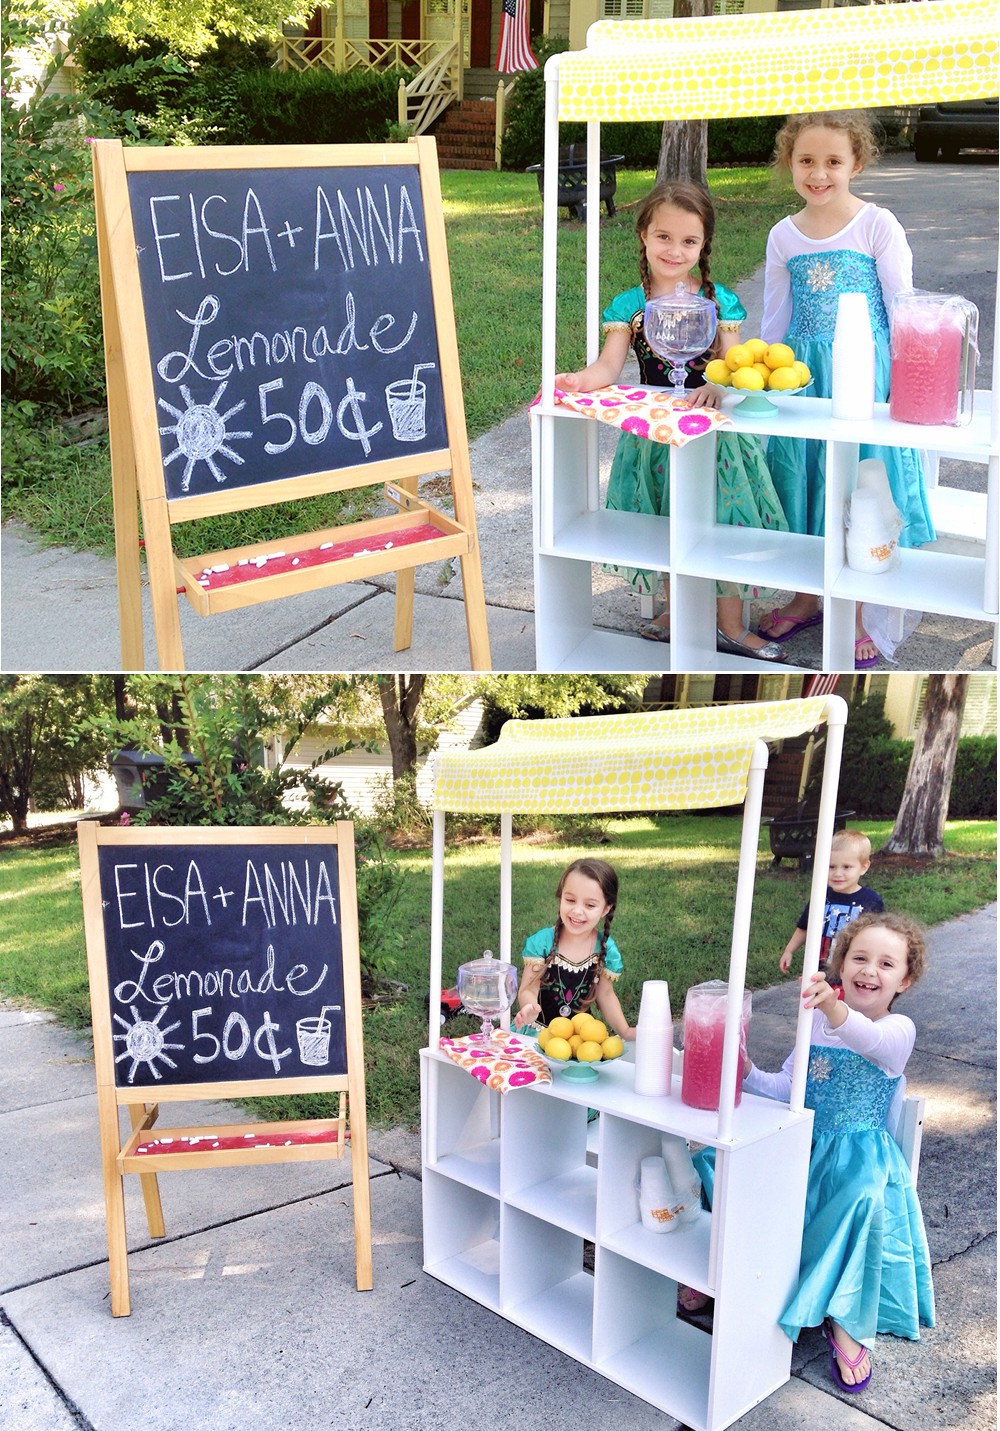 Elsa + Anna Lemonade Stand – At Home With Natalie